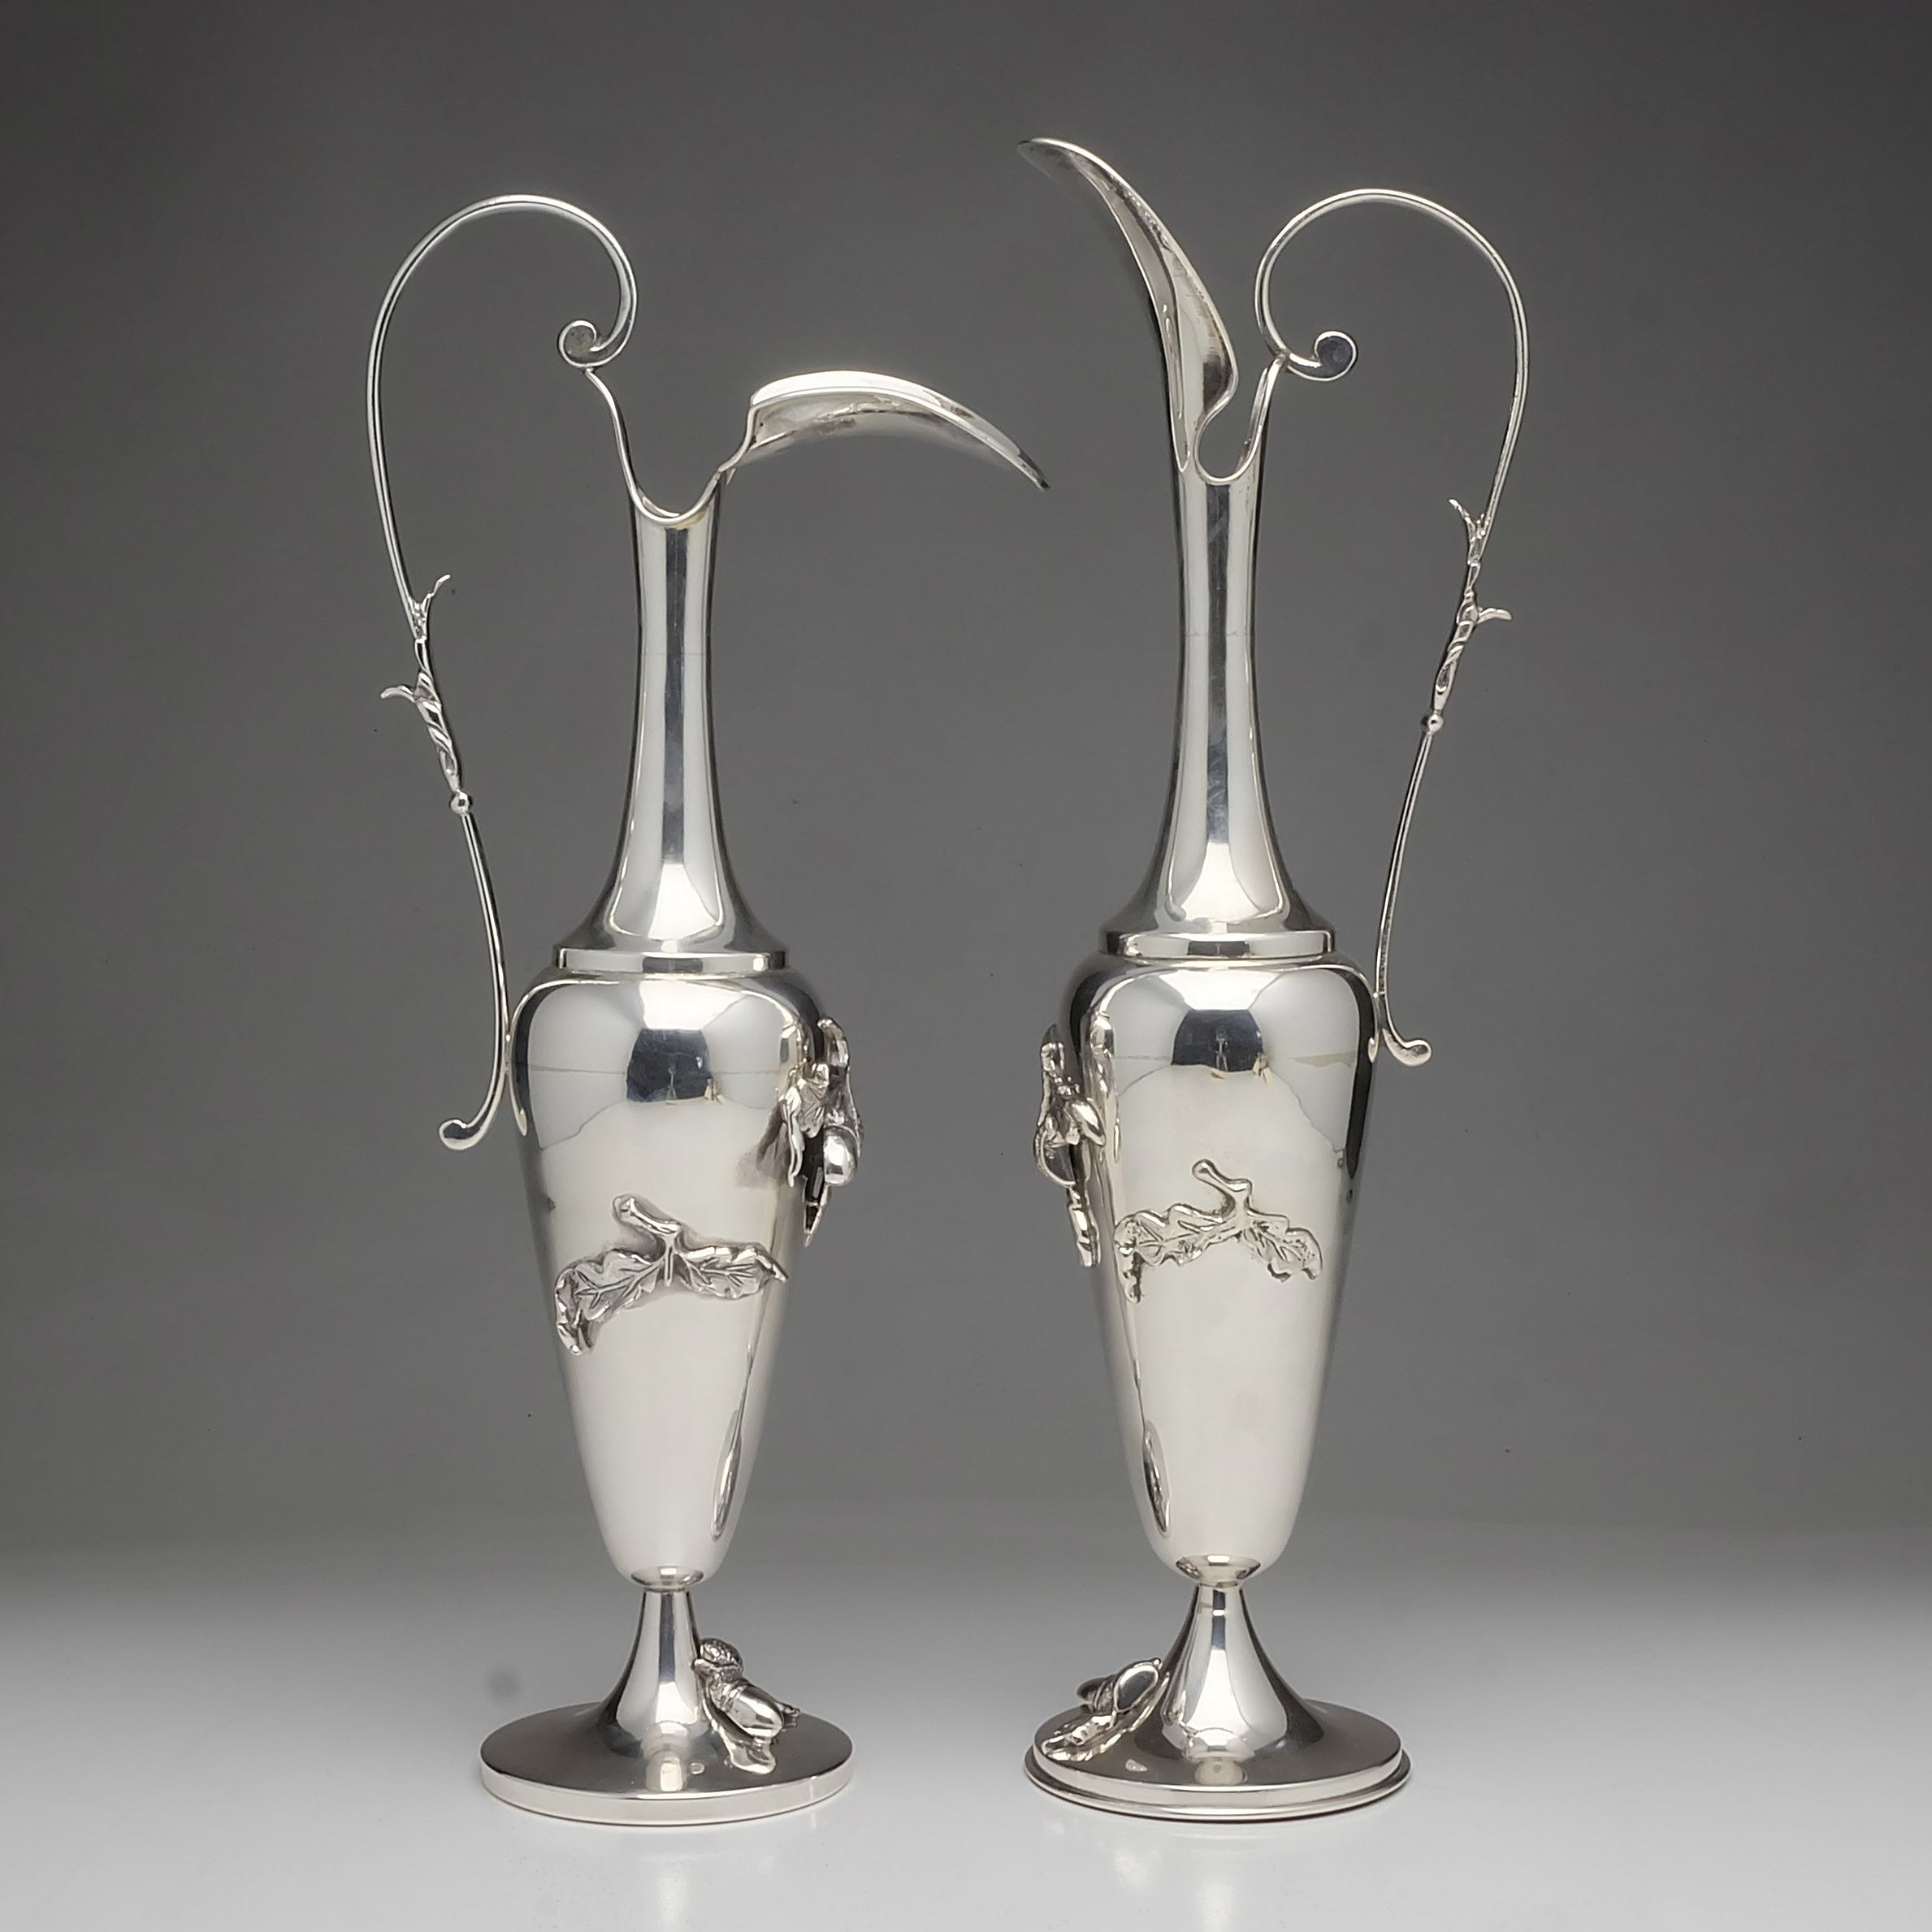 'Pair of Sterling Silver Ewers with Applied Acorns and Leaves'